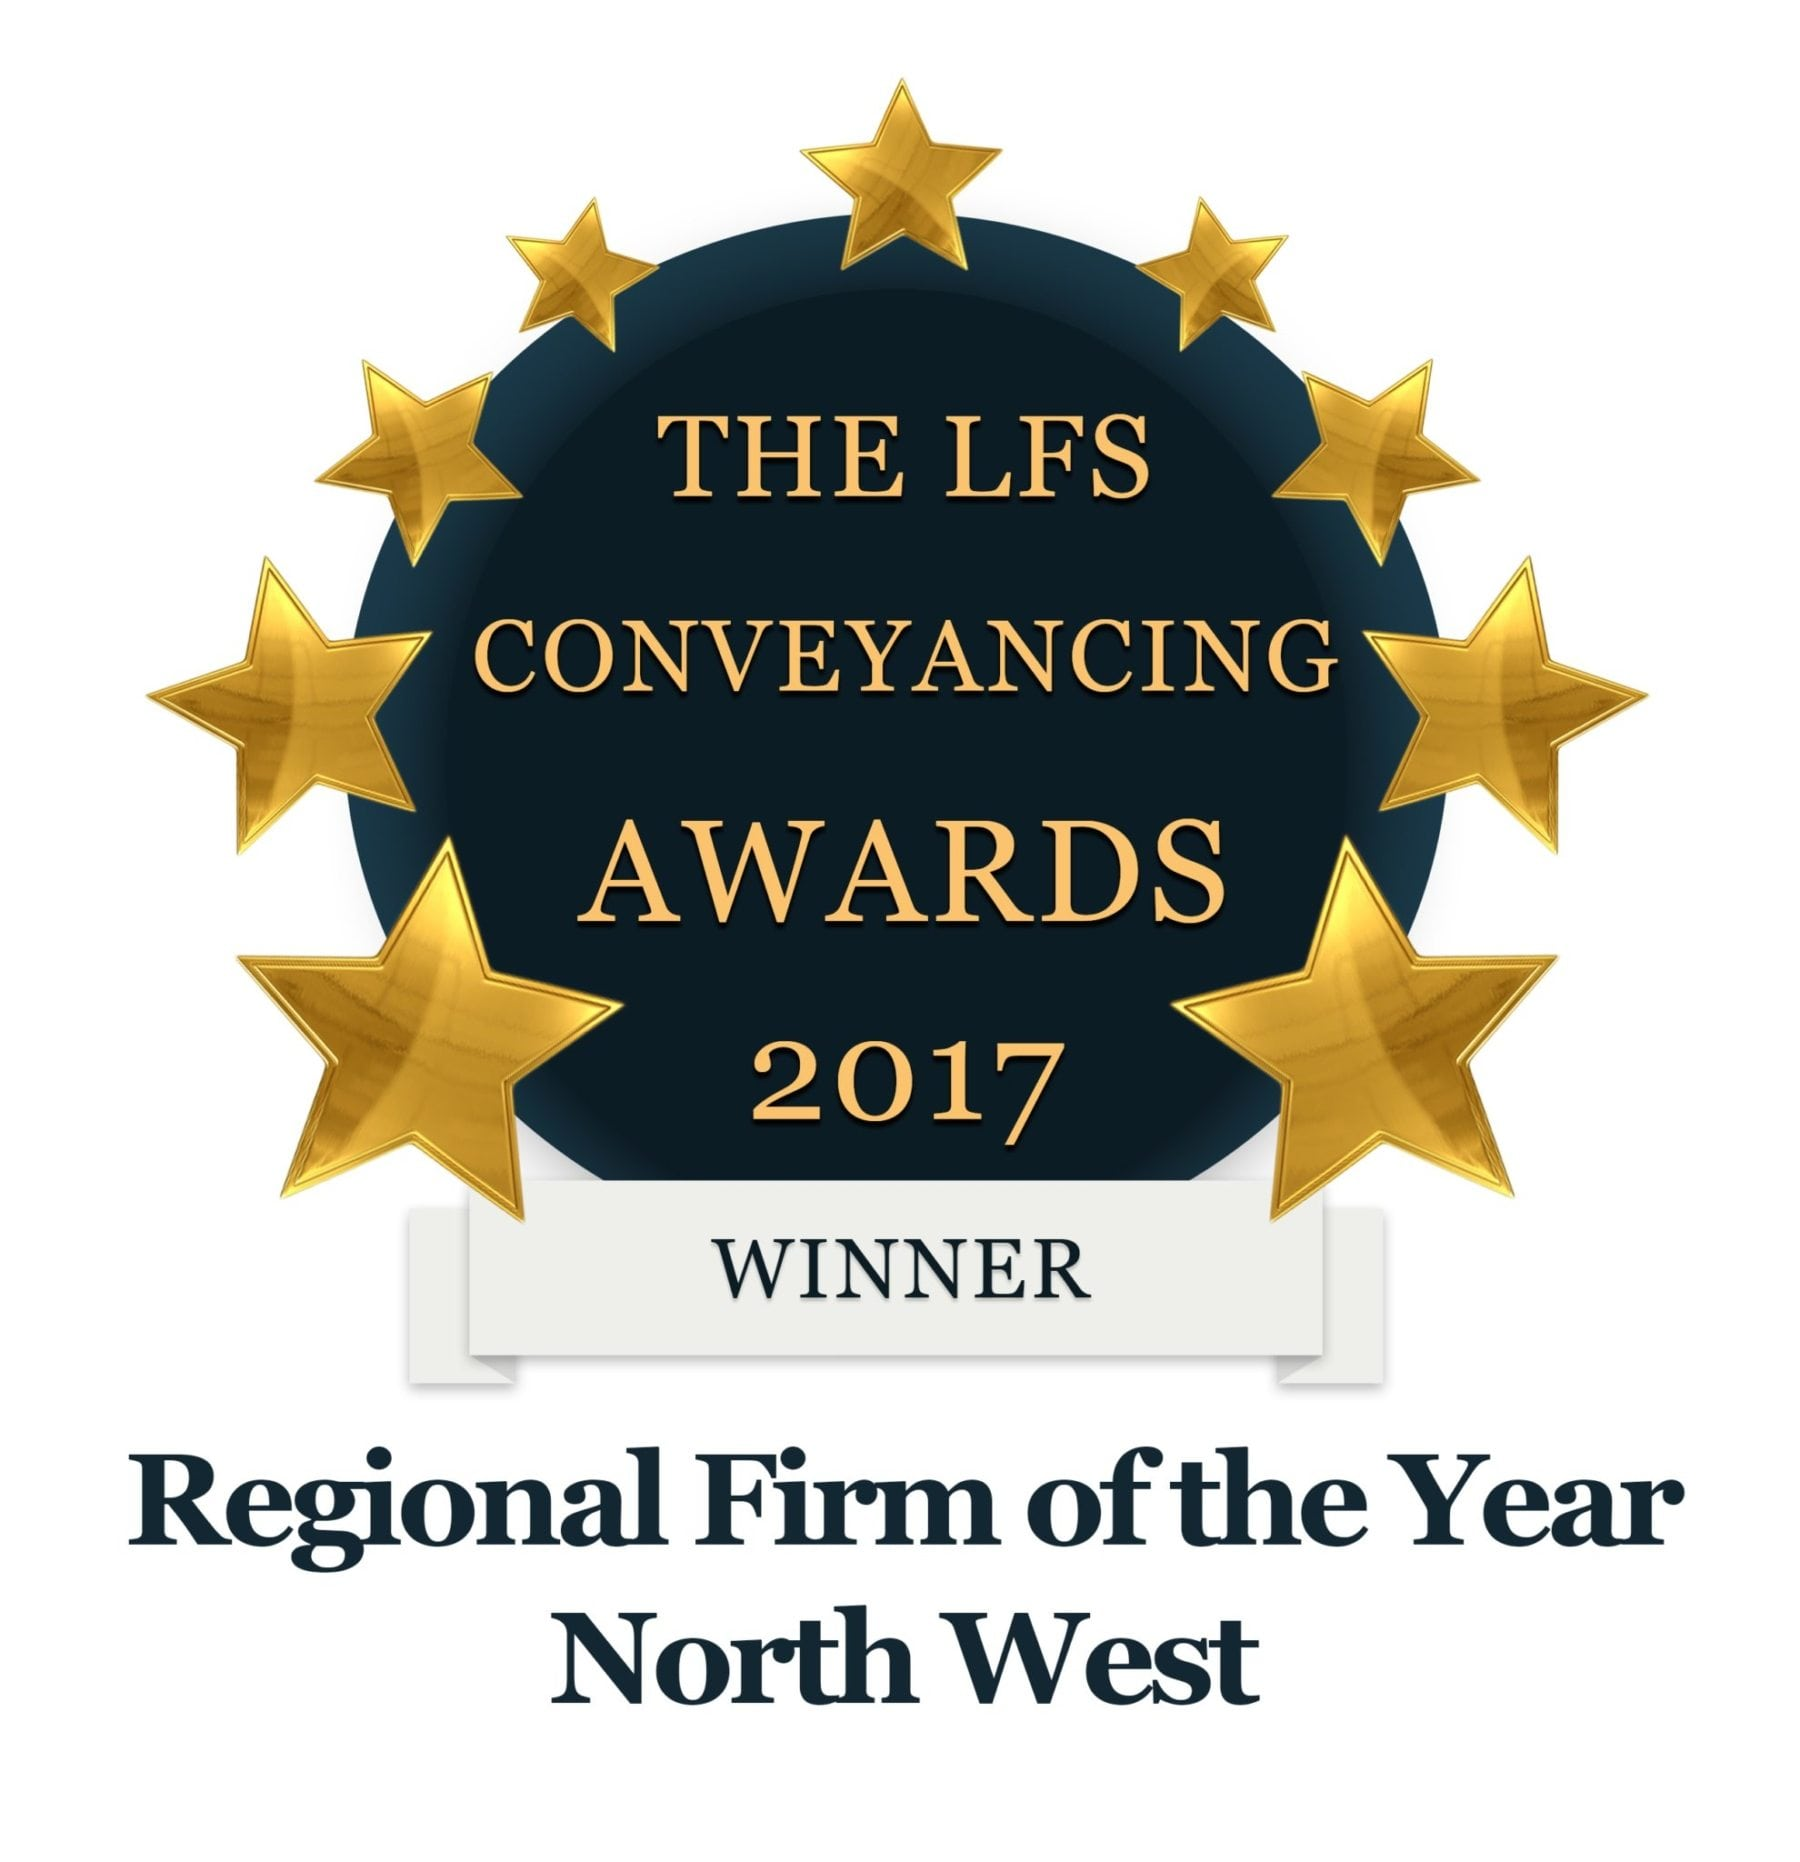 Residential property solicitors conveyancing solicitors preston napthens was delighted when the residential property team won the 2017 lfs regional conveyancing firm of the year award the second time the firm has won solutioingenieria Image collections